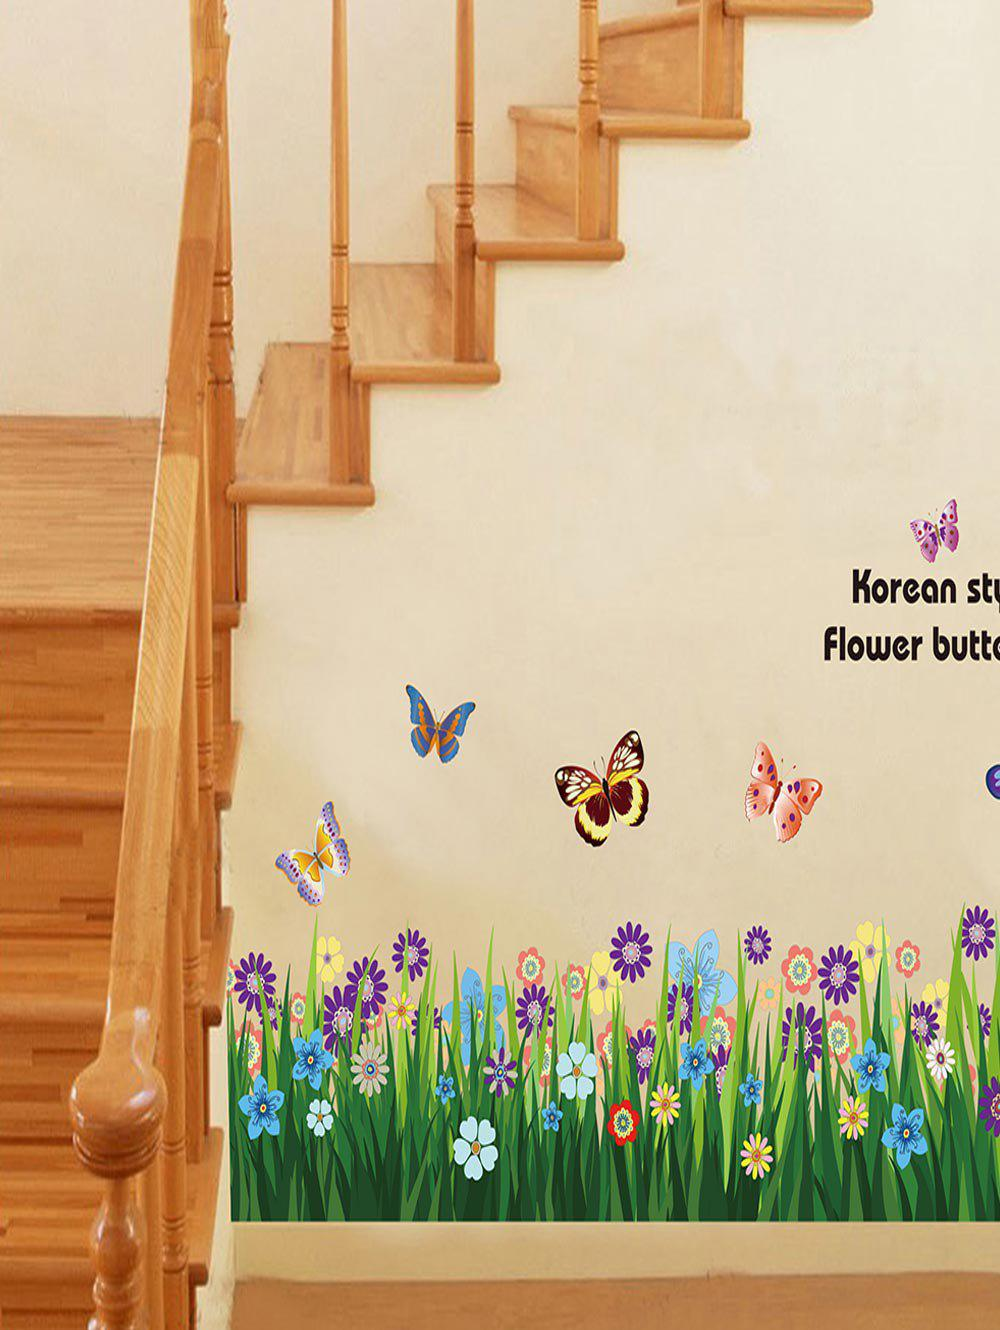 Trendy Flowers Grass Butterfly Print Removable Wall Art Stickers